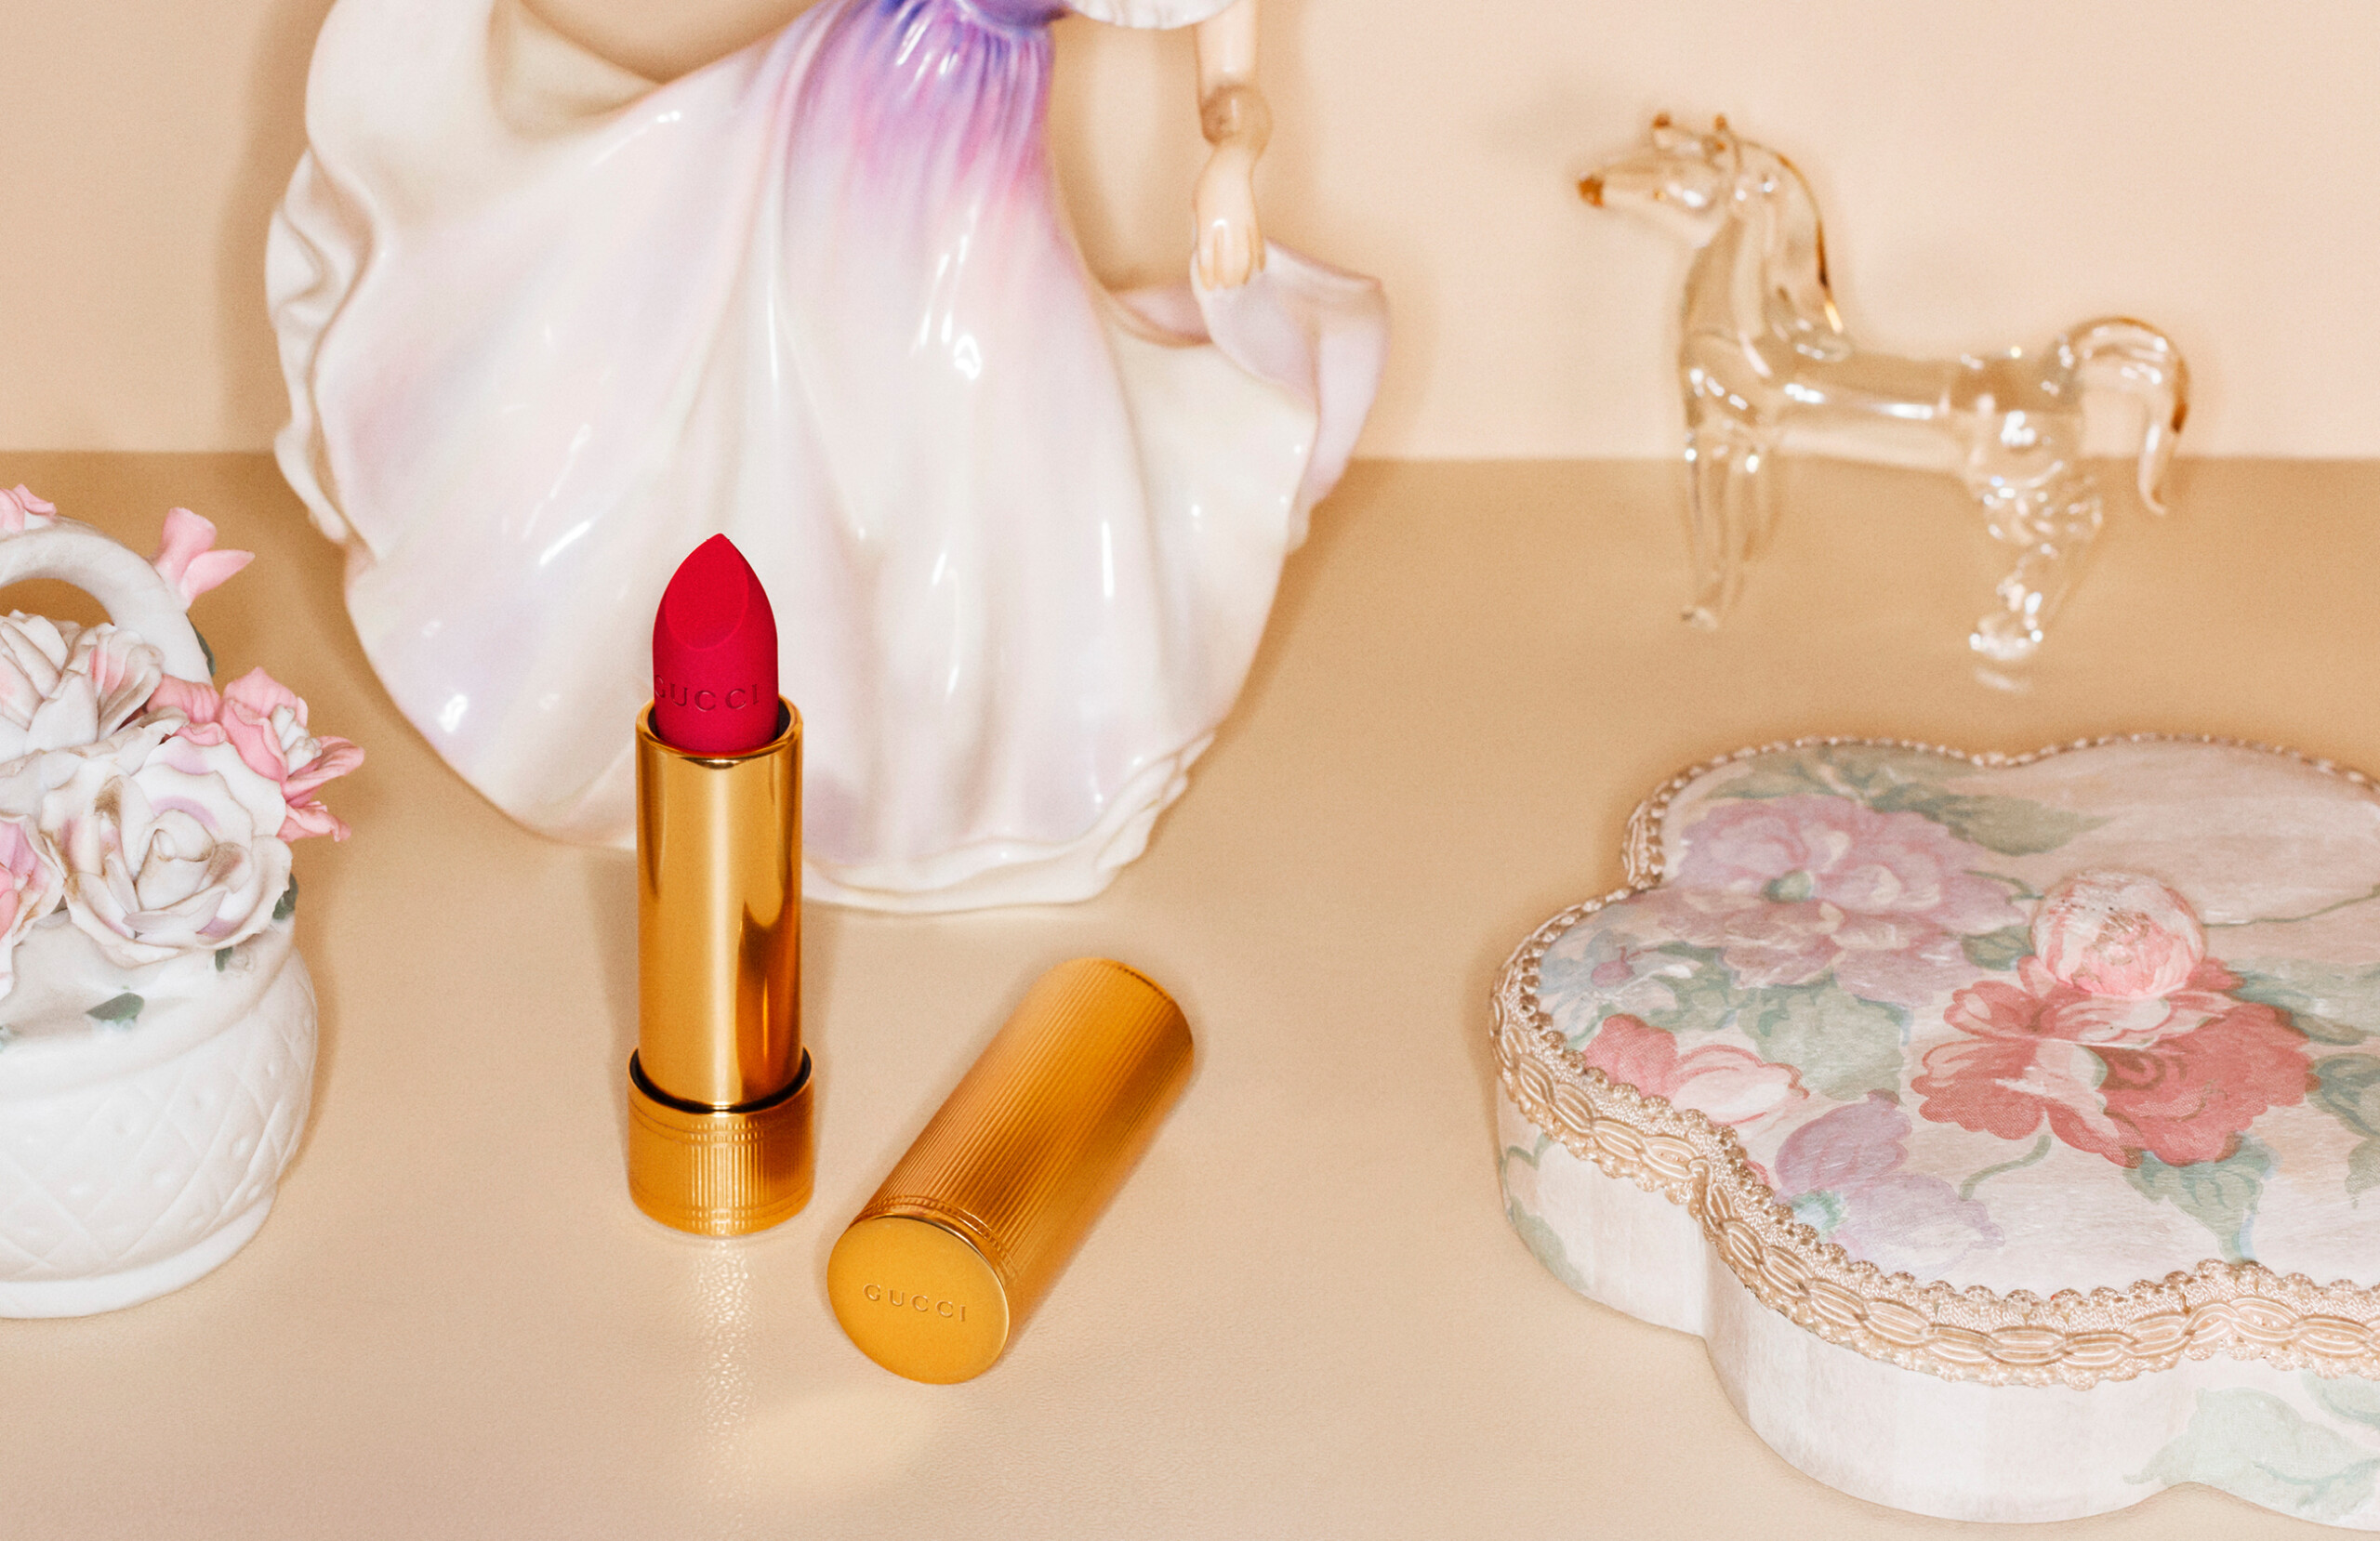 Gucci Beauty Vintage Glamour